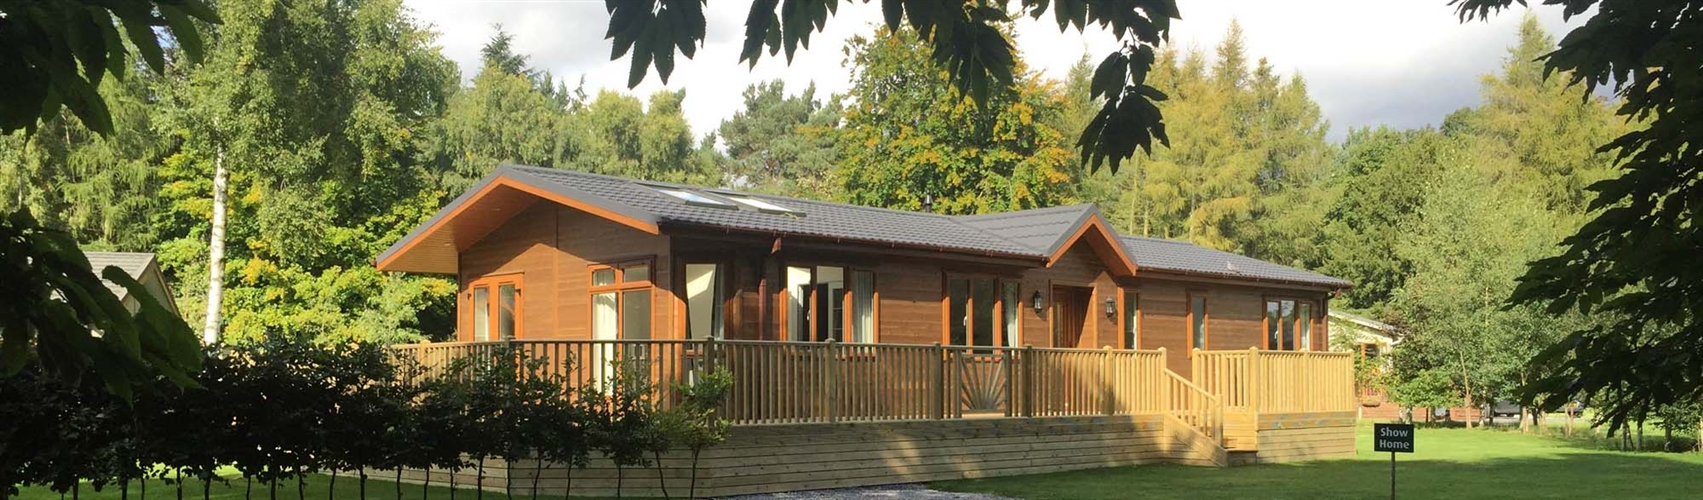 Timber Lodges